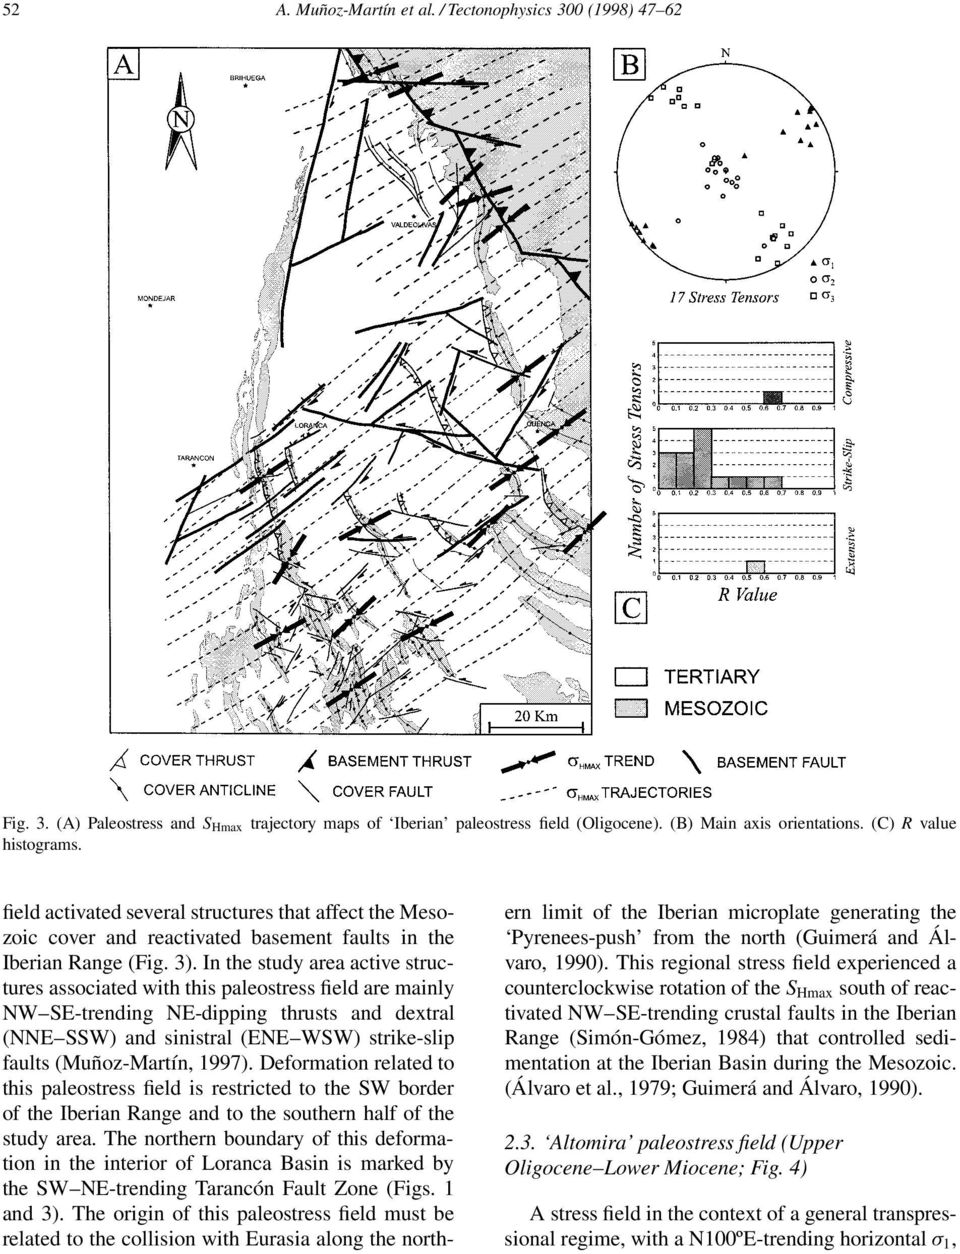 In the study area active structures associated with this paleostress field are mainly NW SE-trending NE-dipping thrusts and dextral (NNE SSW) and sinistral (ENE WSW) strike-slip faults (Muñoz-Martín,